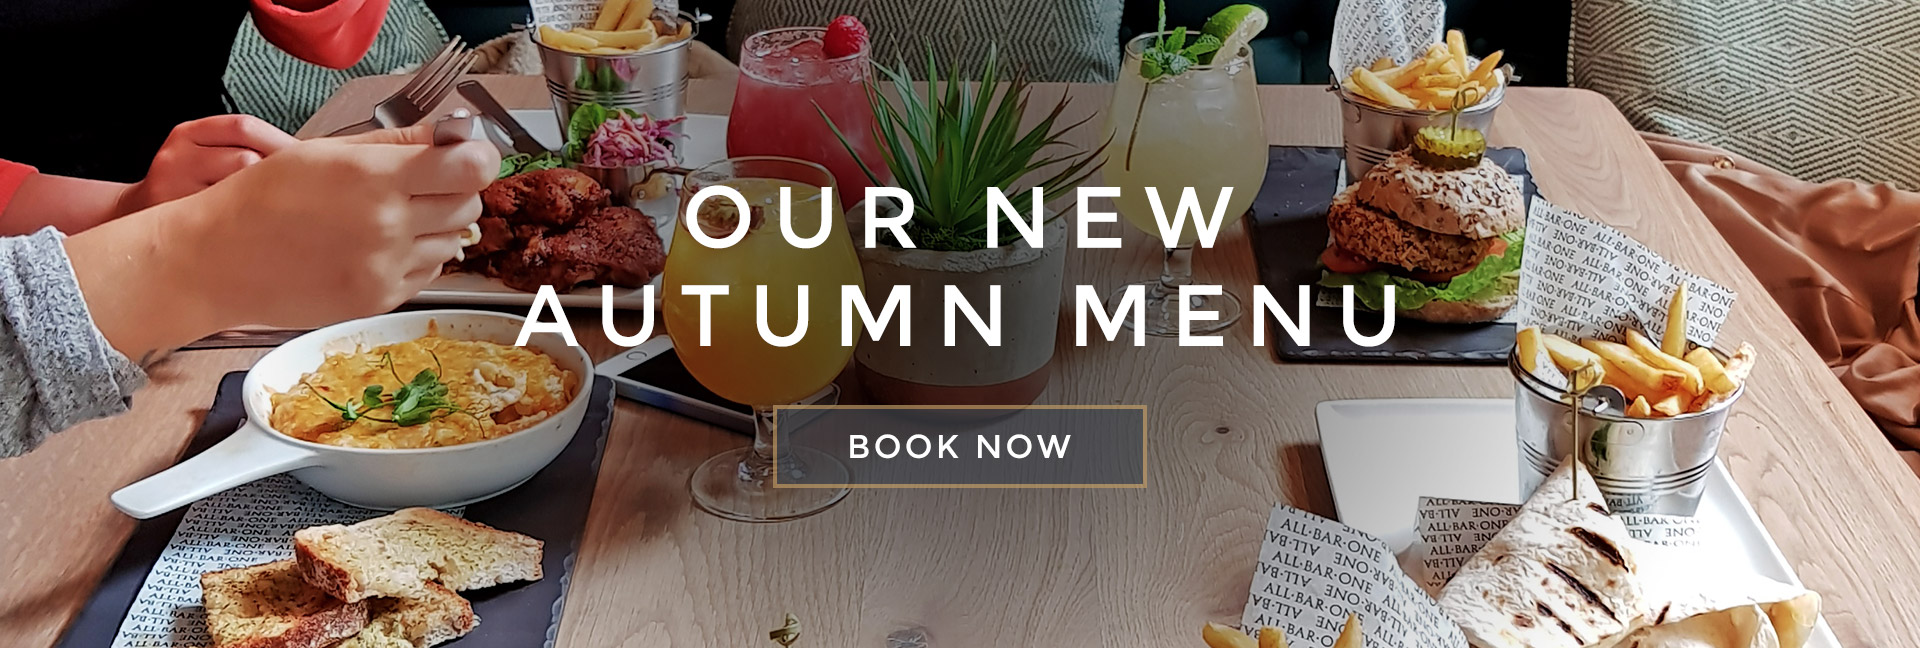 Our new Autumn menu at All Bar One New Oxford Street - Book now